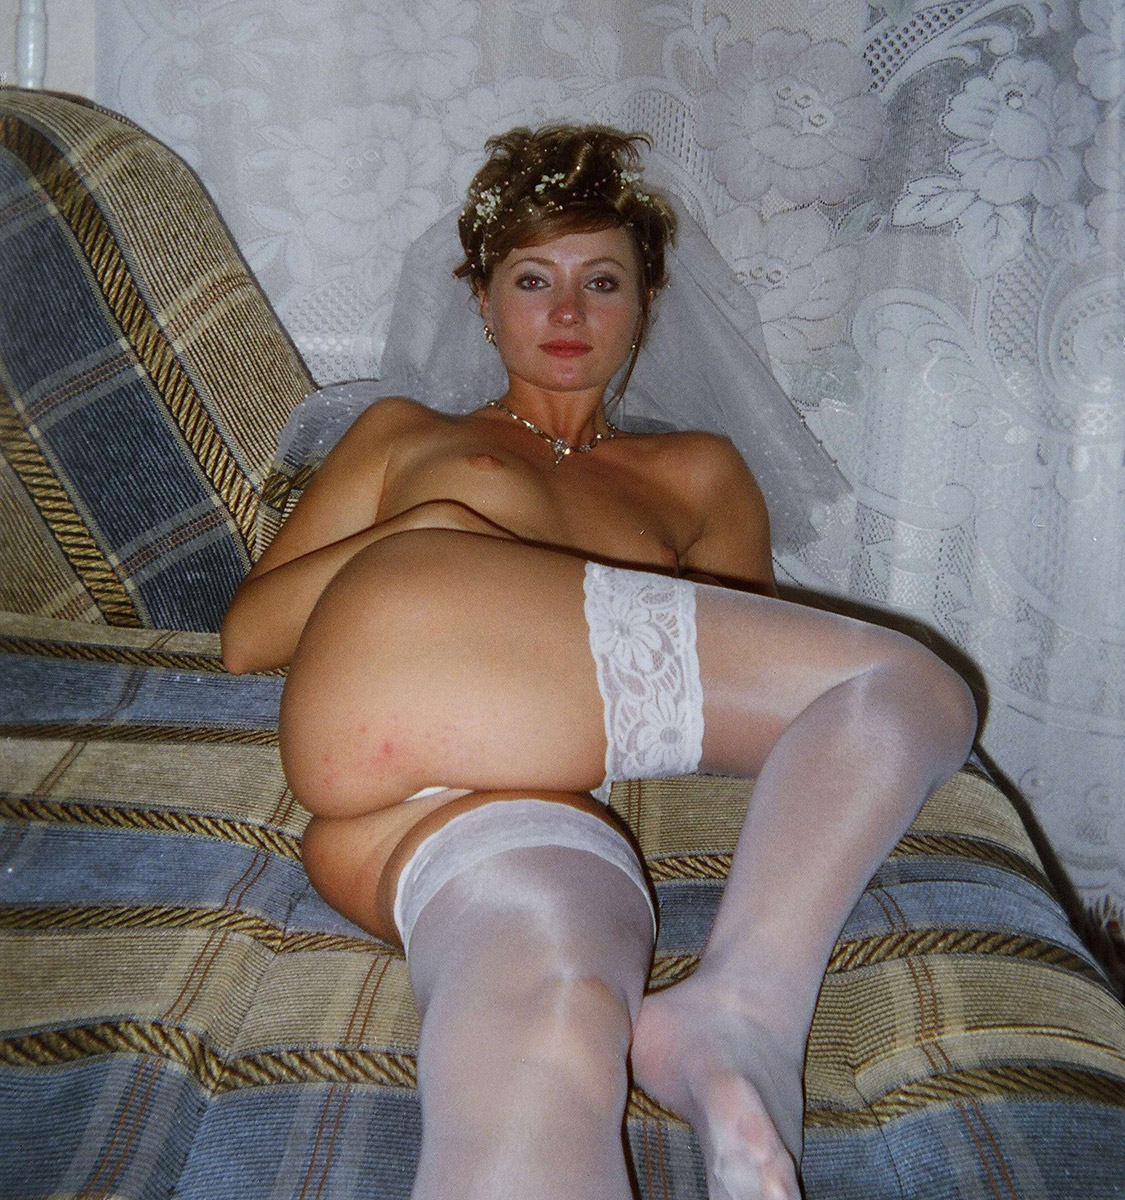 posing Russian nude bride amateur